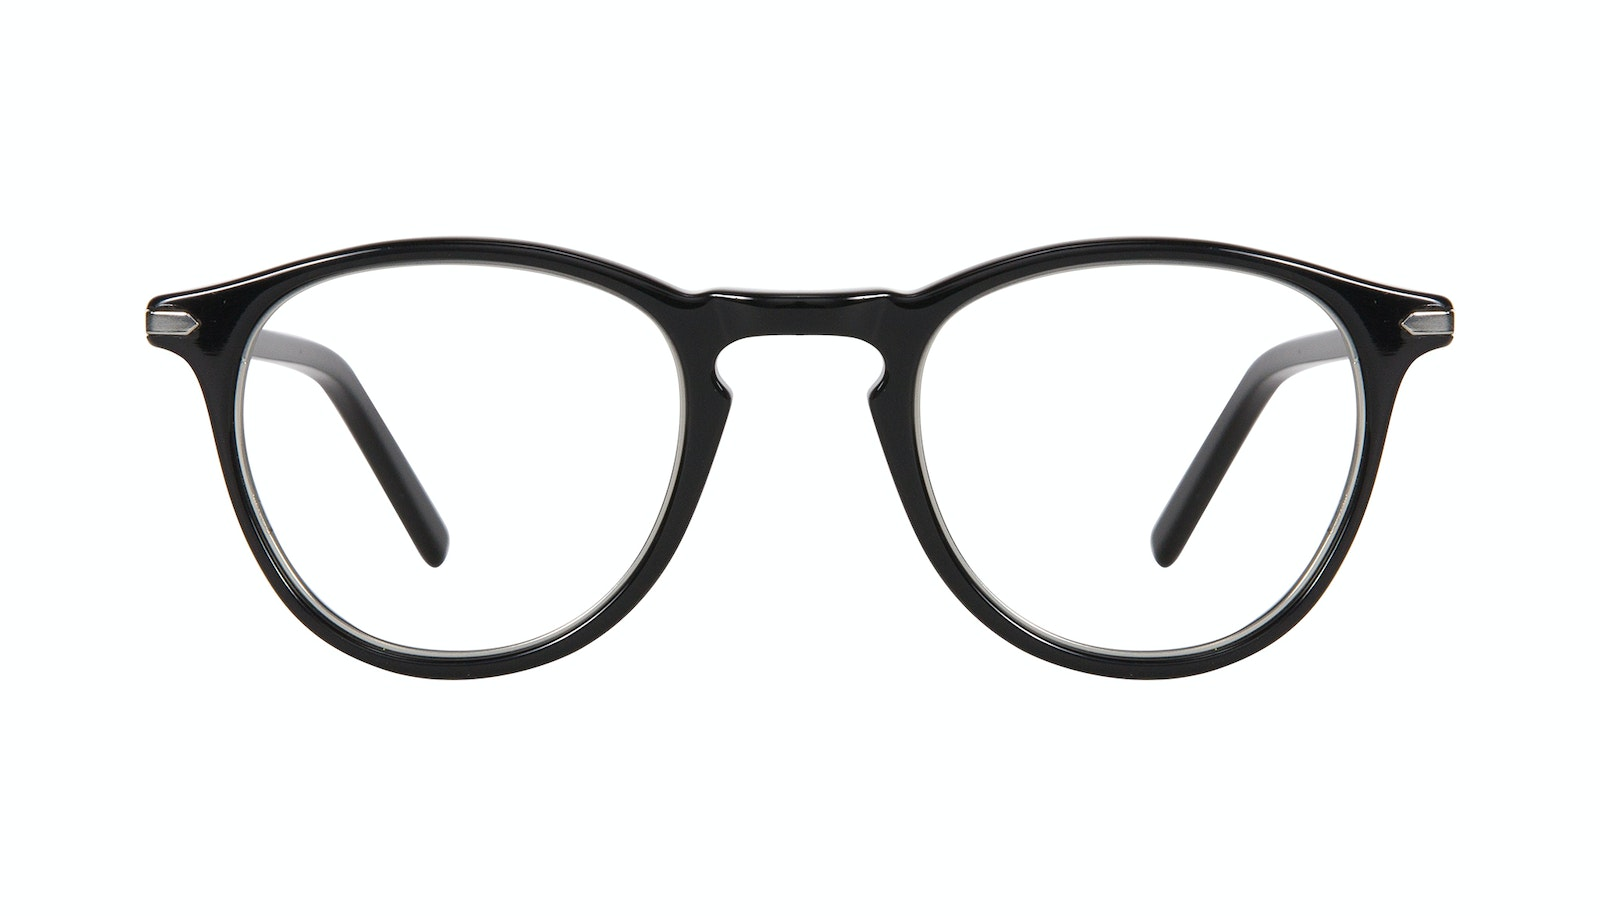 Affordable Fashion Glasses Round Eyeglasses Men Looks Onyx Silver